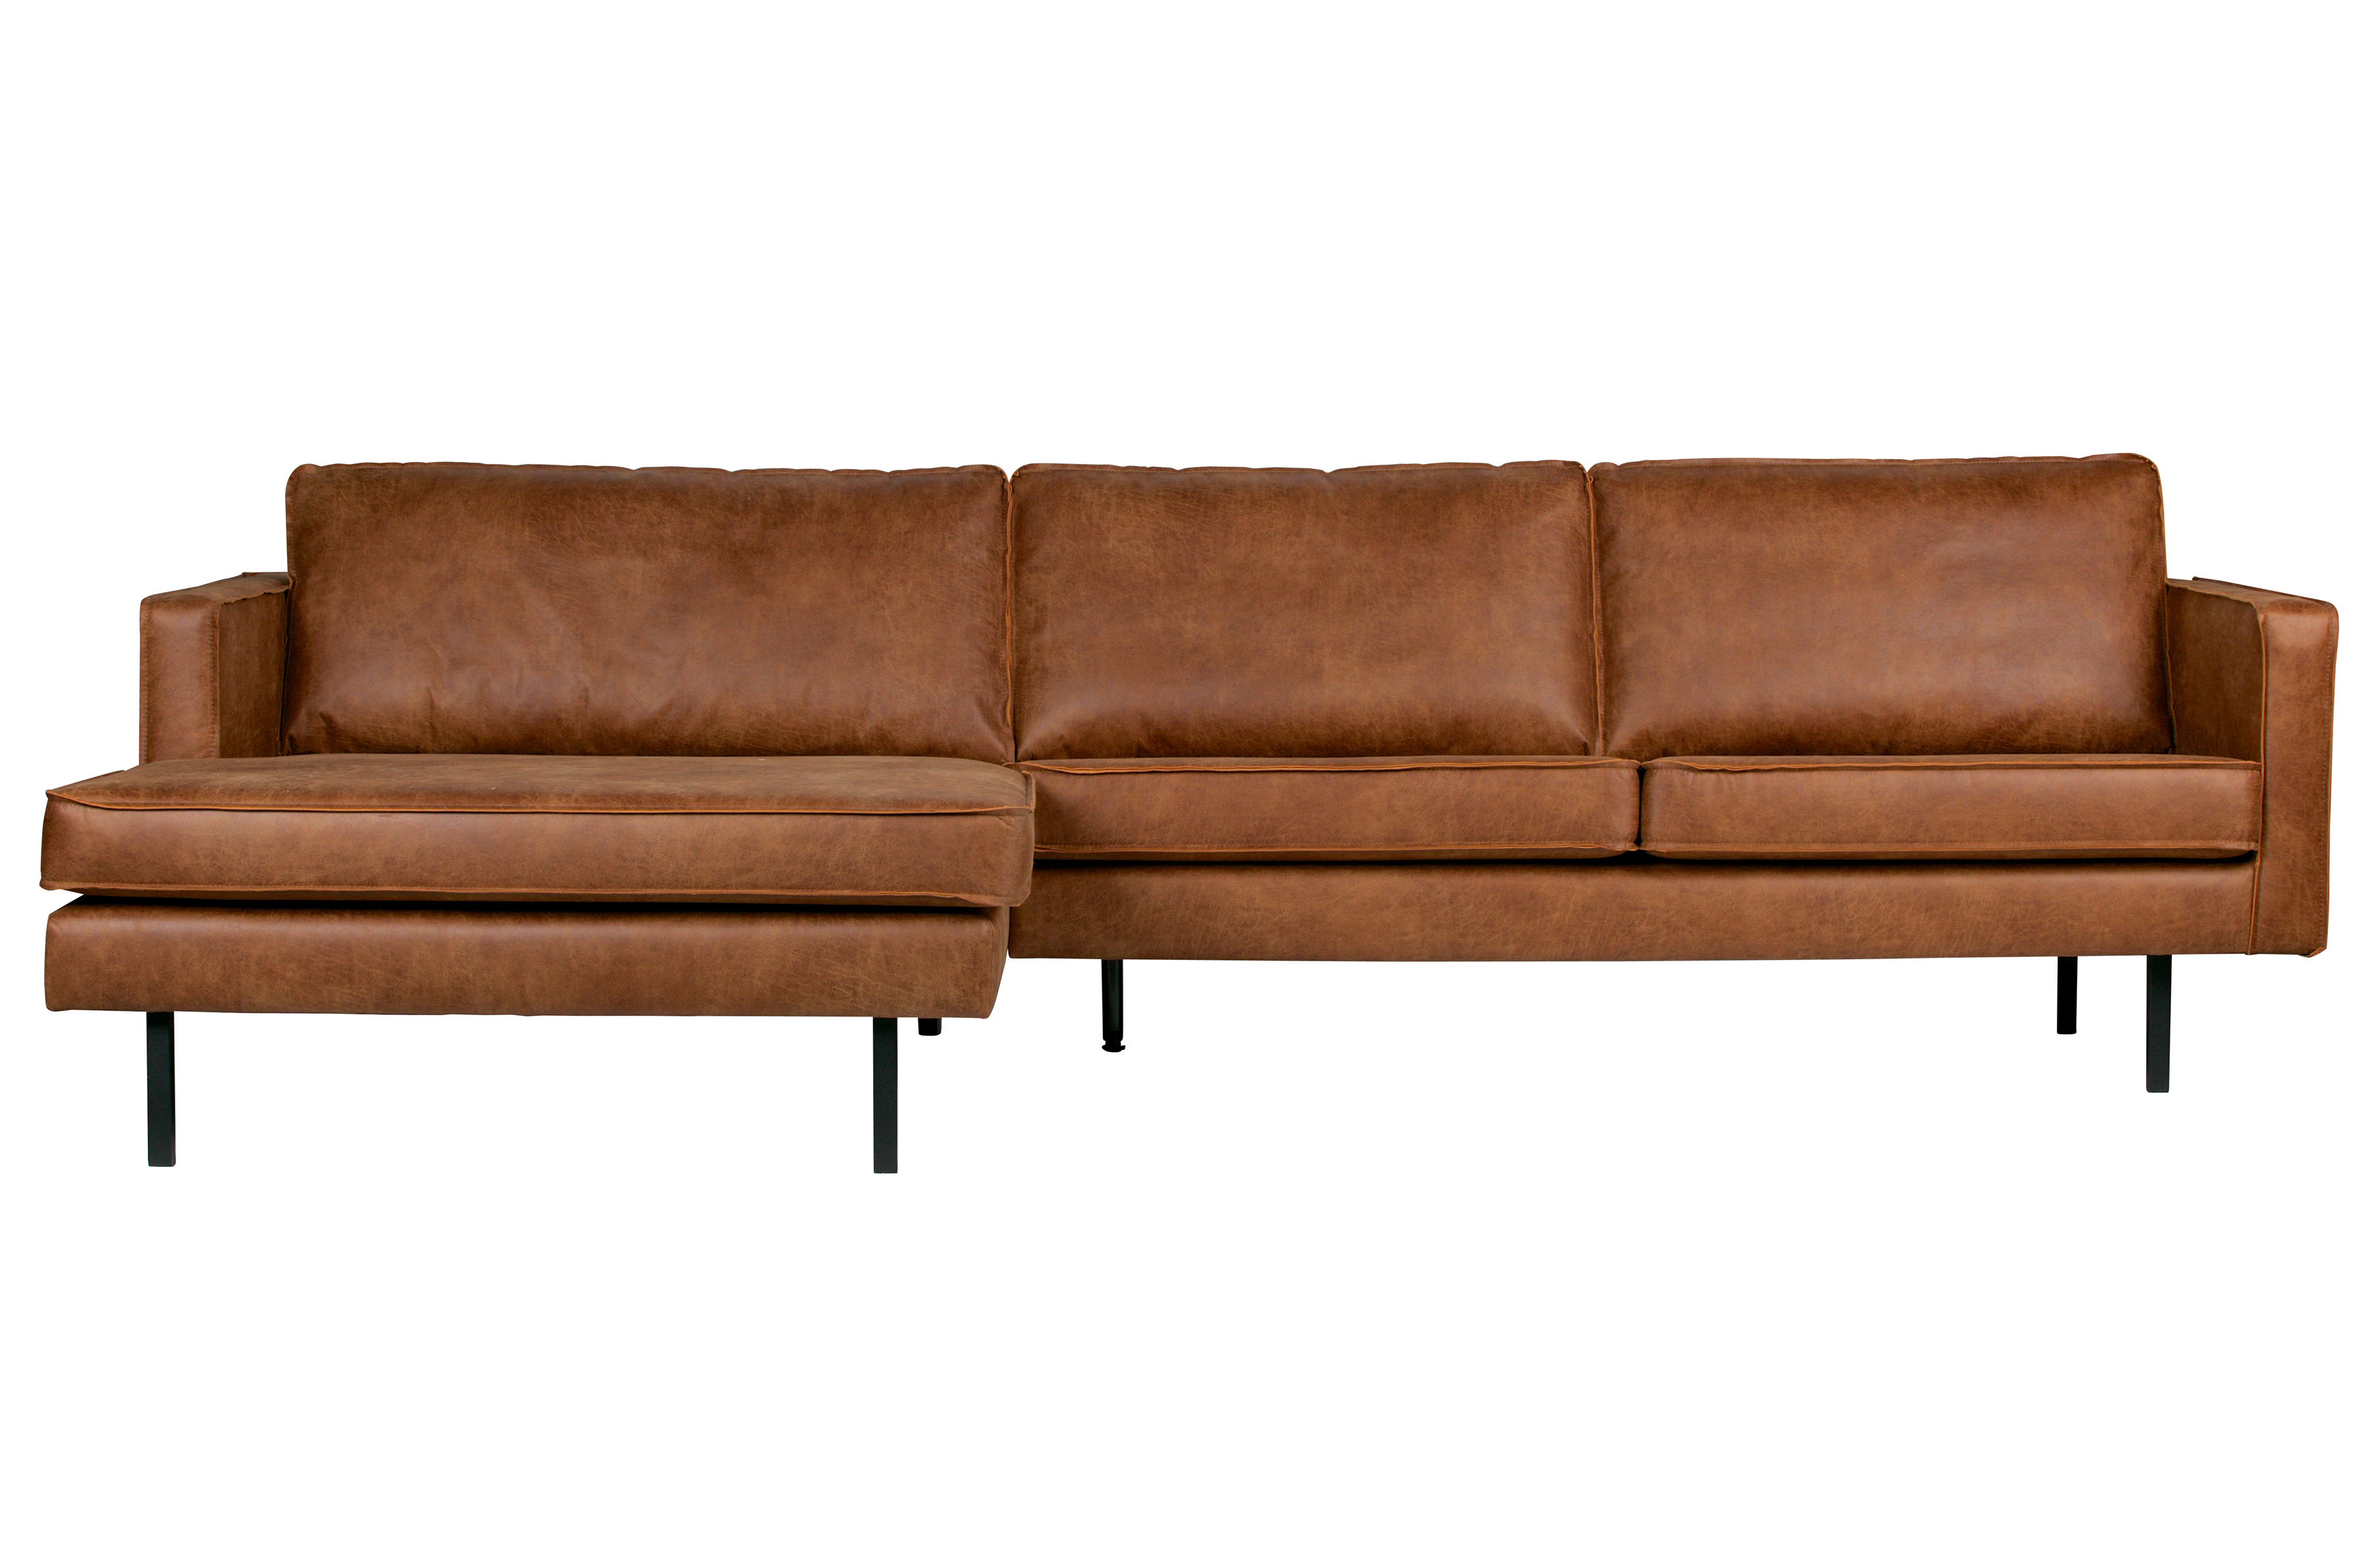 Bank Chaise Lounge Rodeo Bank Als 3 Zits Bank Met Chaise Longue Eliving